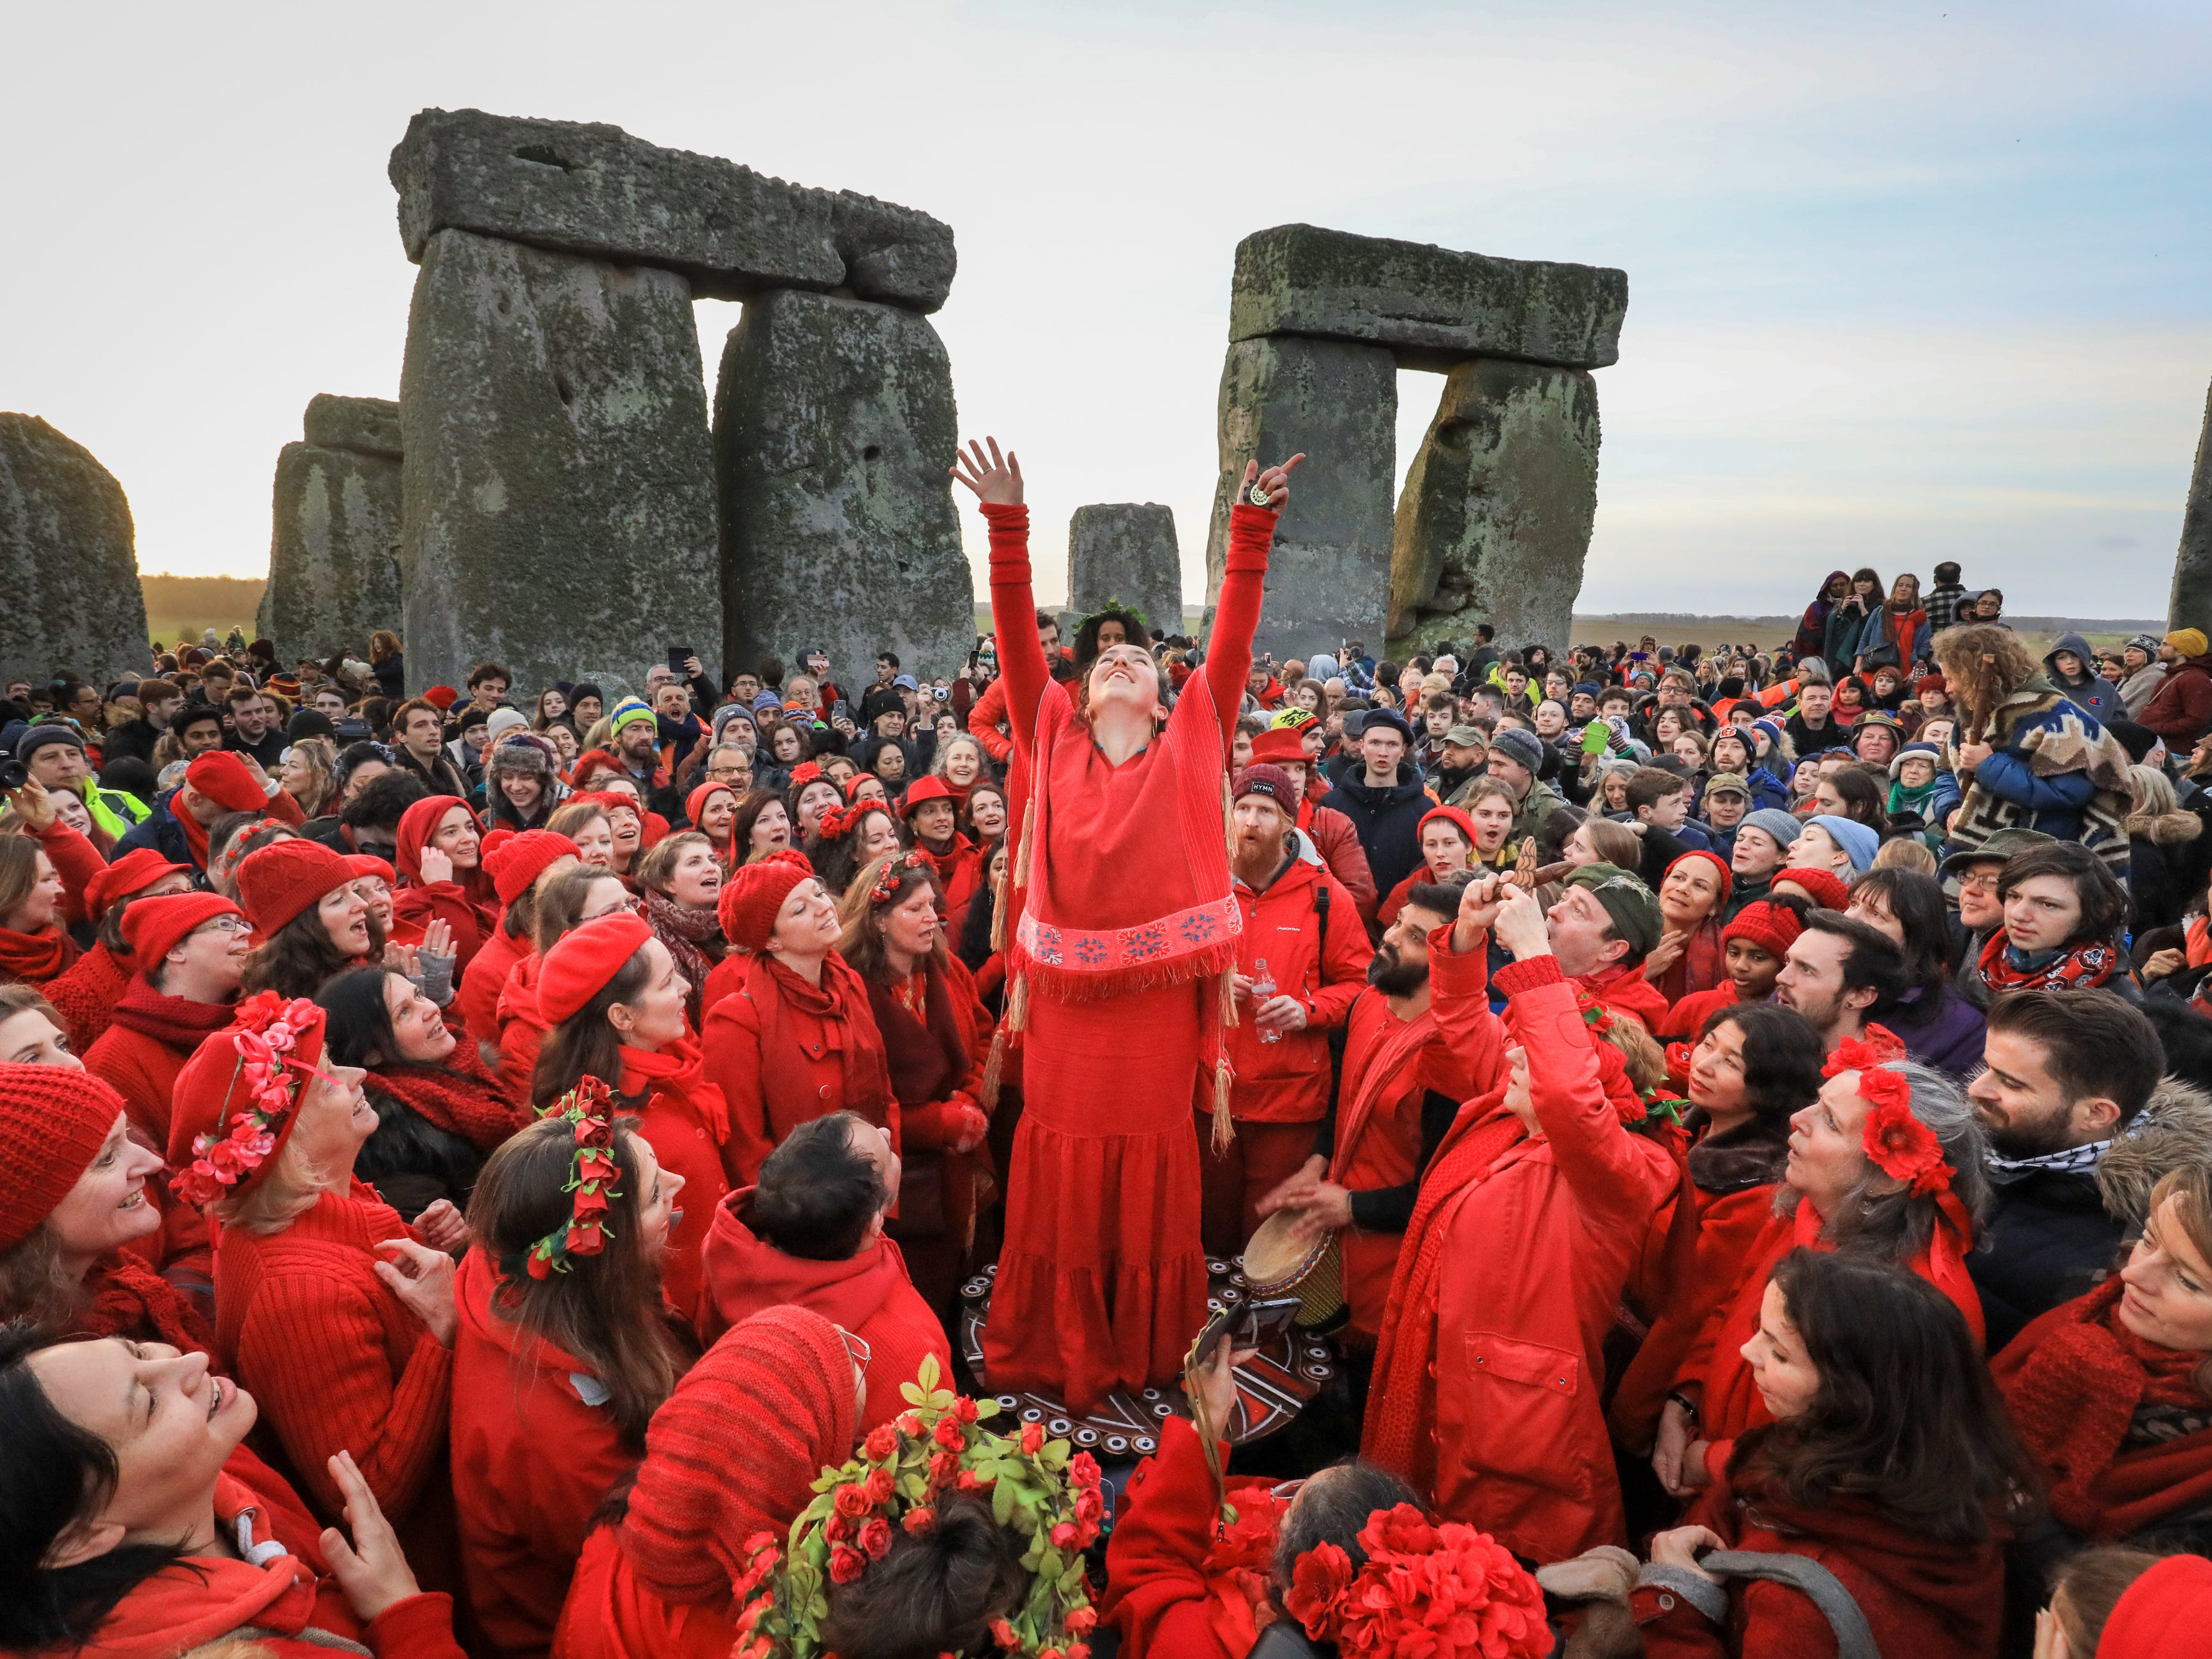 Members of the Shakti Sings choir sing as druids, pagans and revellers gather in the center of Stonehenge, hoping to see the sun rise, as they take part in a winter solstice ceremony at the ancient neolithic monument near Amesbury on Dec. 22, 2018 in Wiltshire, England.